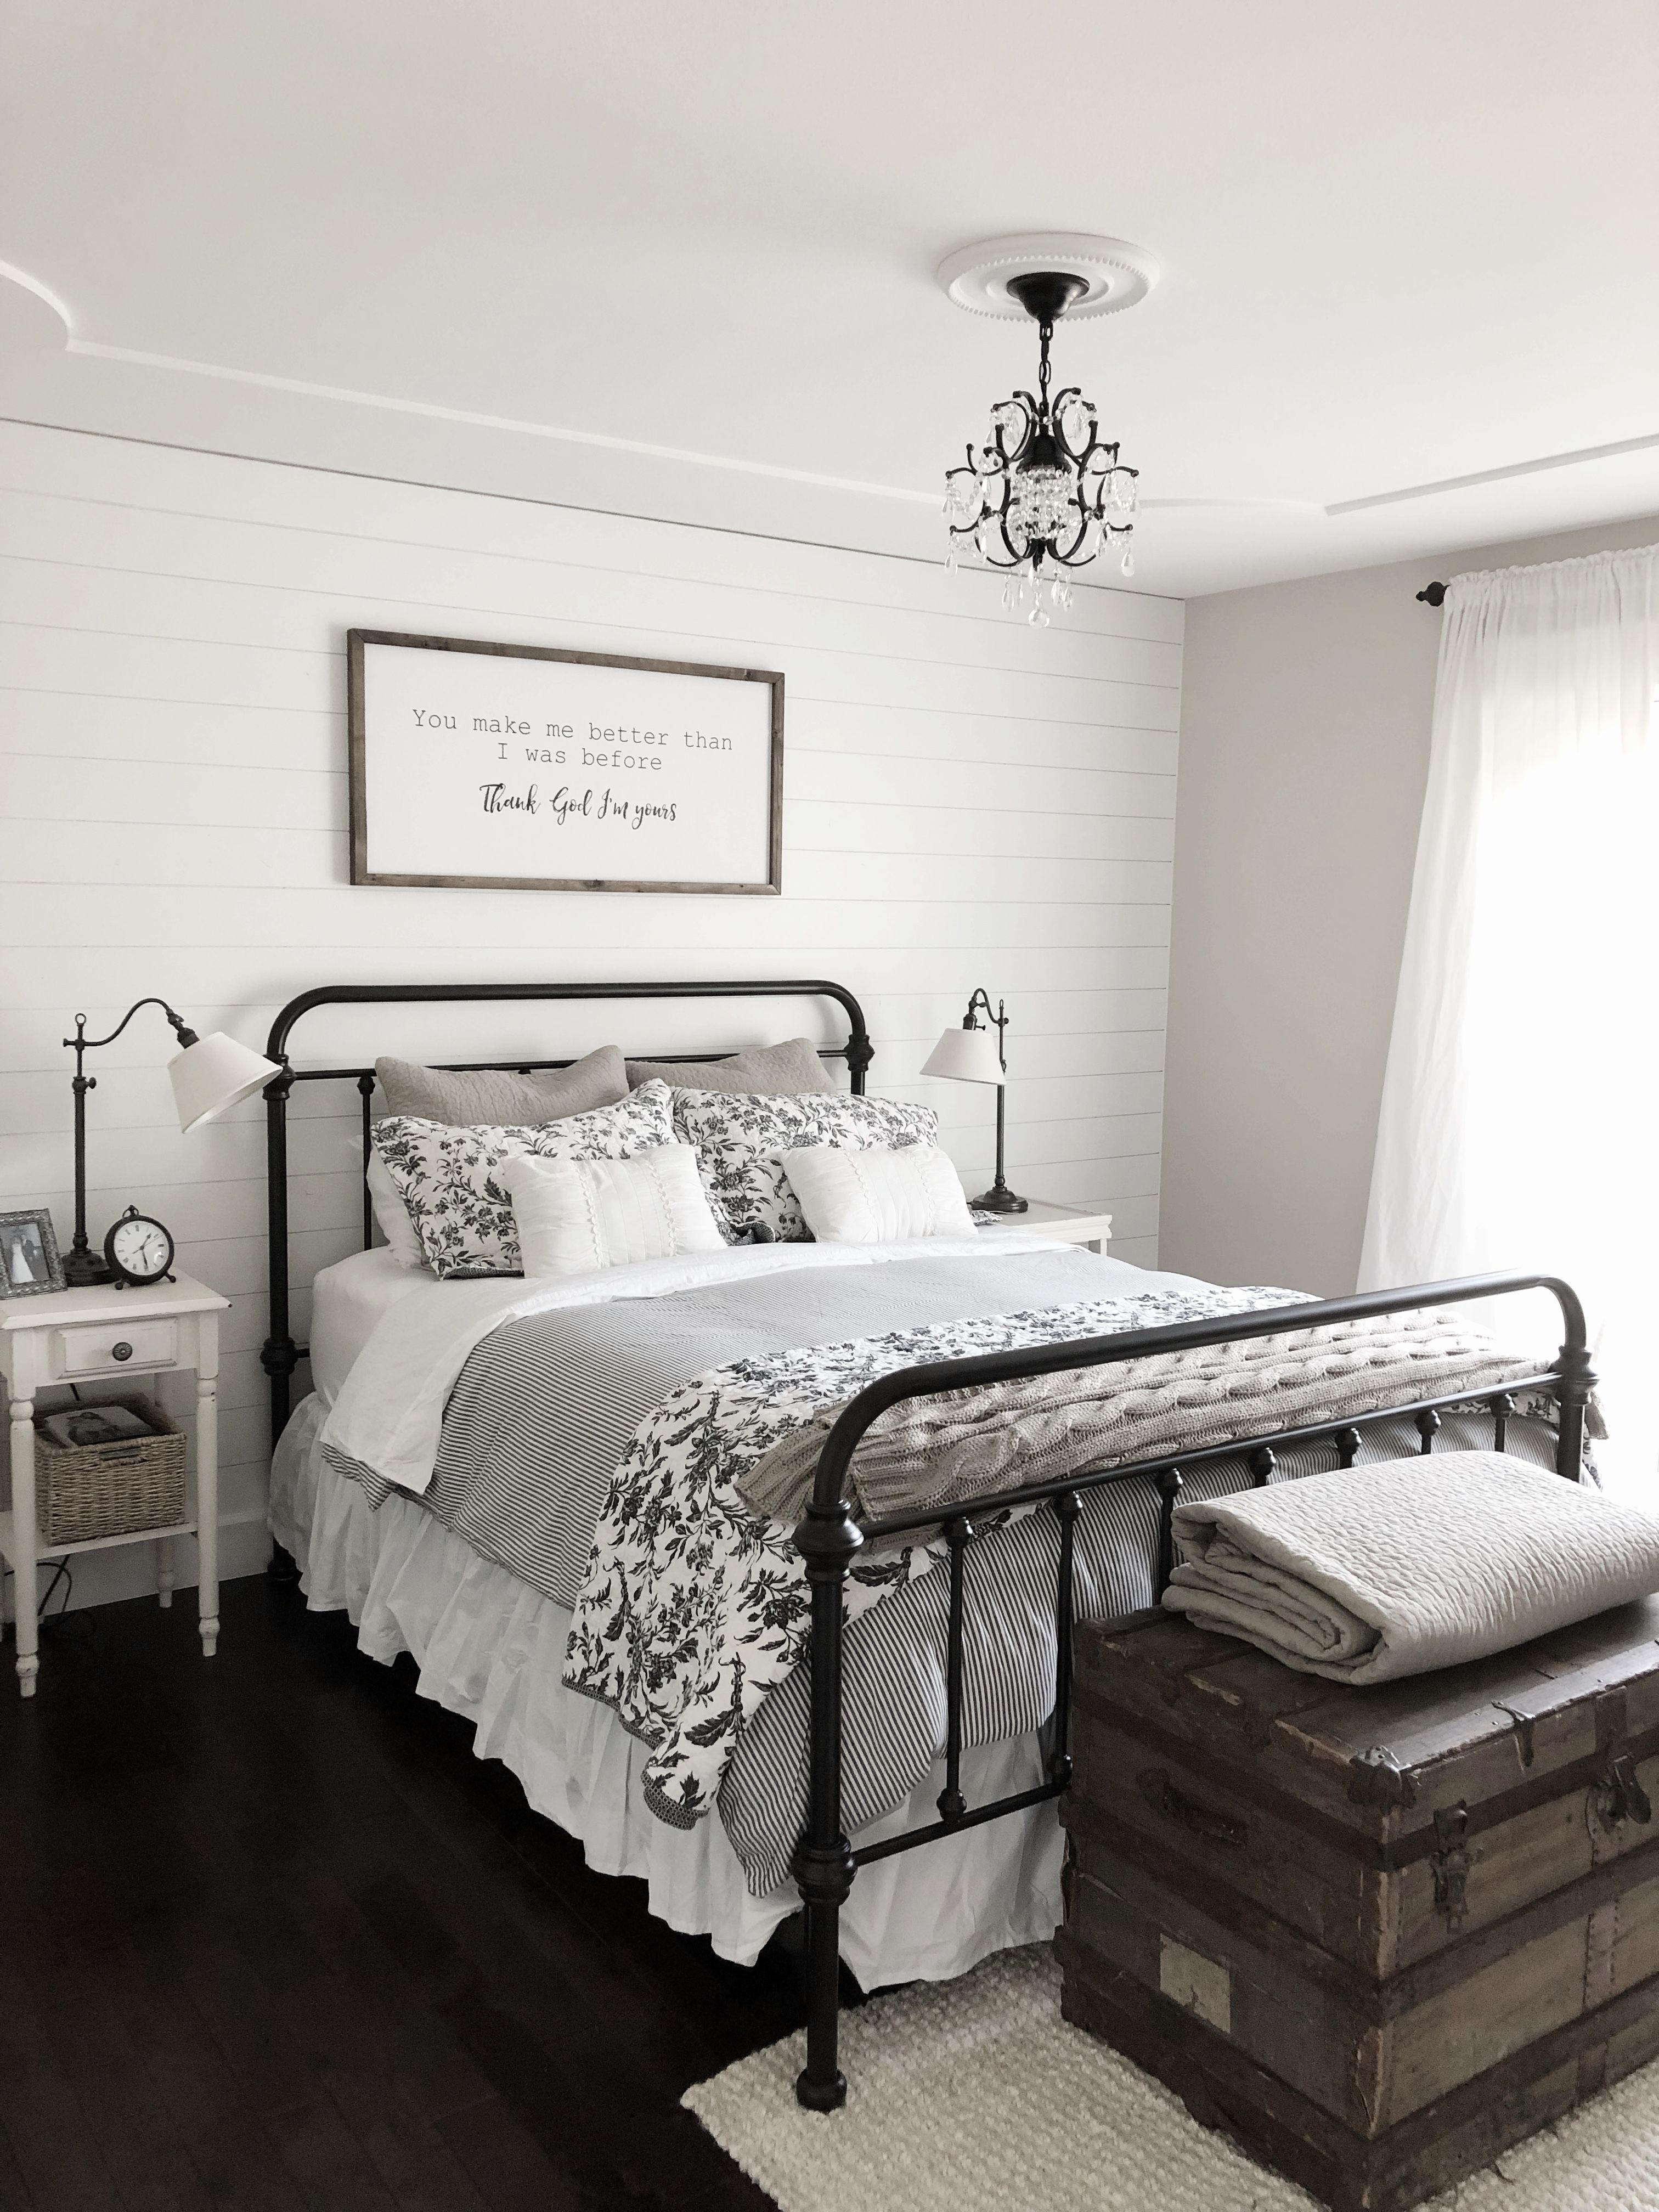 Pin By Kathy Grimon On For The Home Farmhouse Bedroom Decor